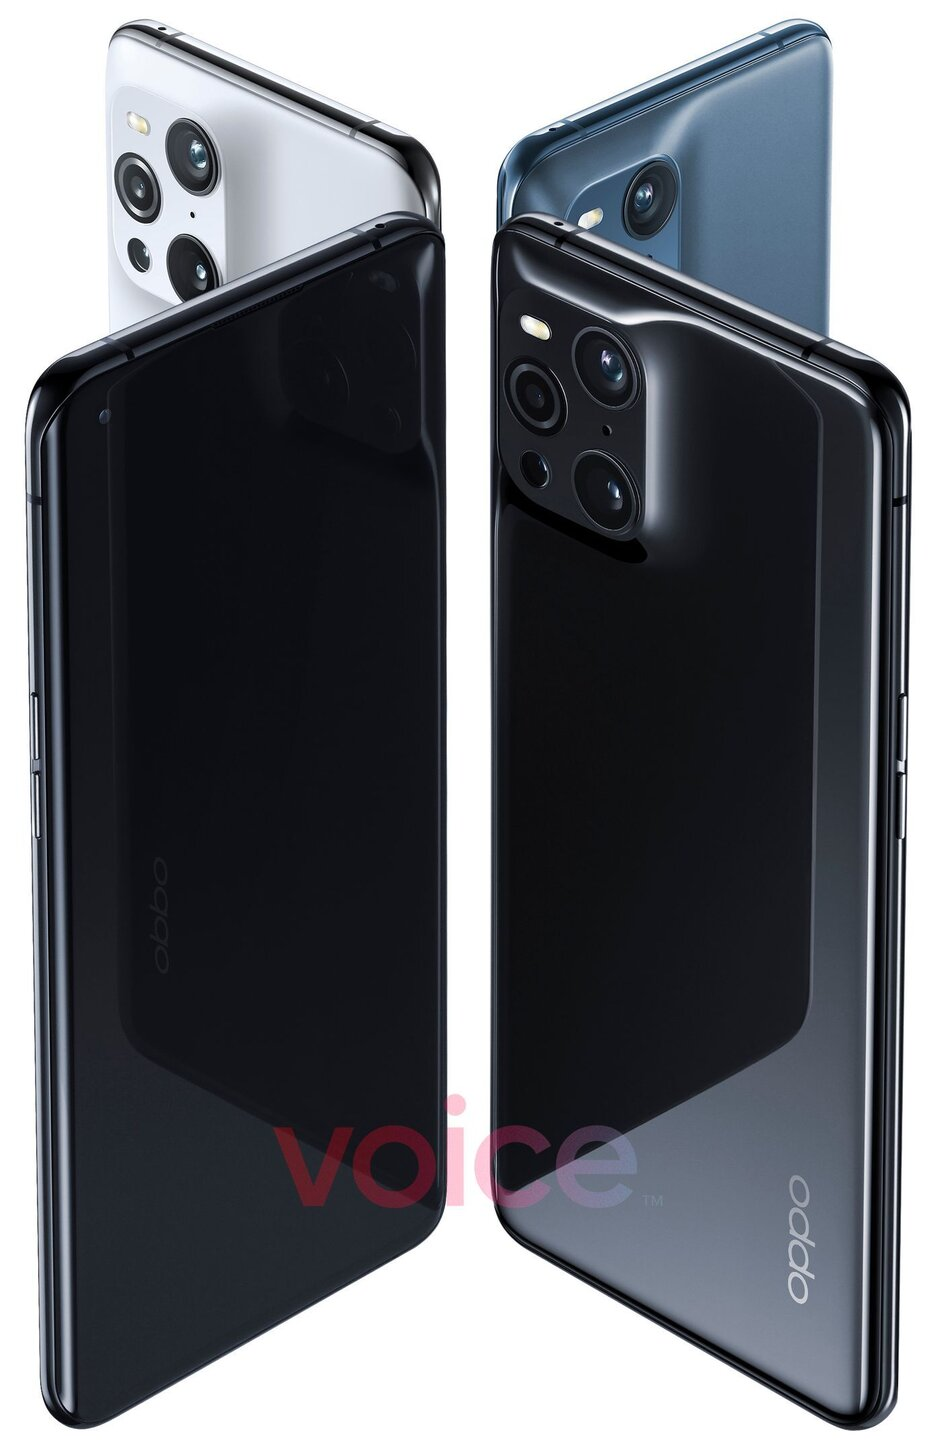 Oppo Find X3 Pro Price in Romania